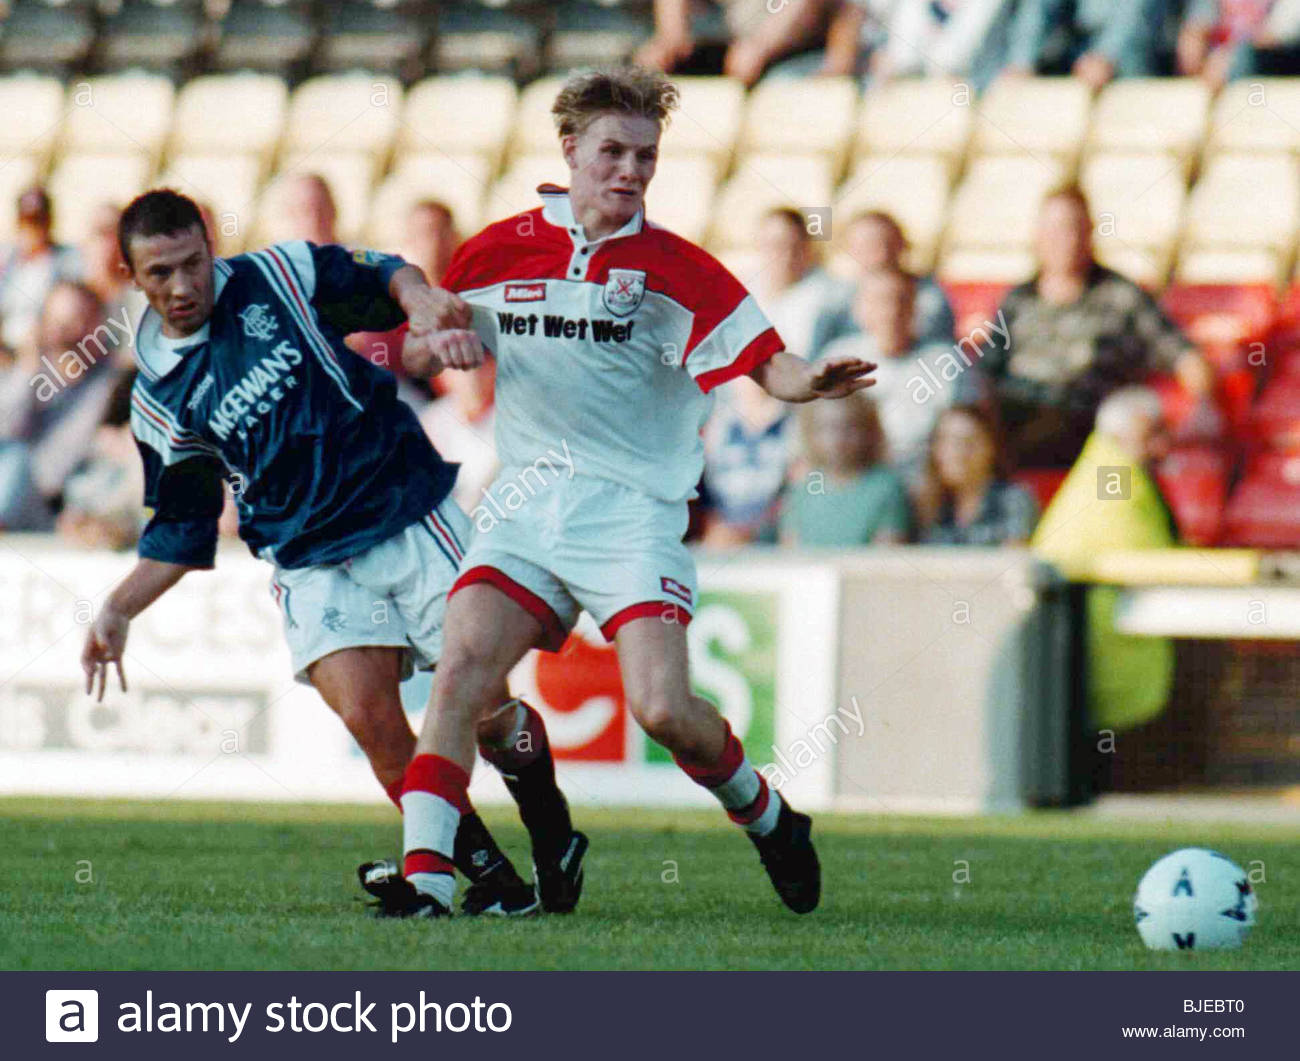 14/08/96 COCA-COLA CUP RND 2 CLYDEBANK V RANGERS (0-3) FIRHILL - GLASGOW Clydebank's Gary Teale (right) competes - Stock Image